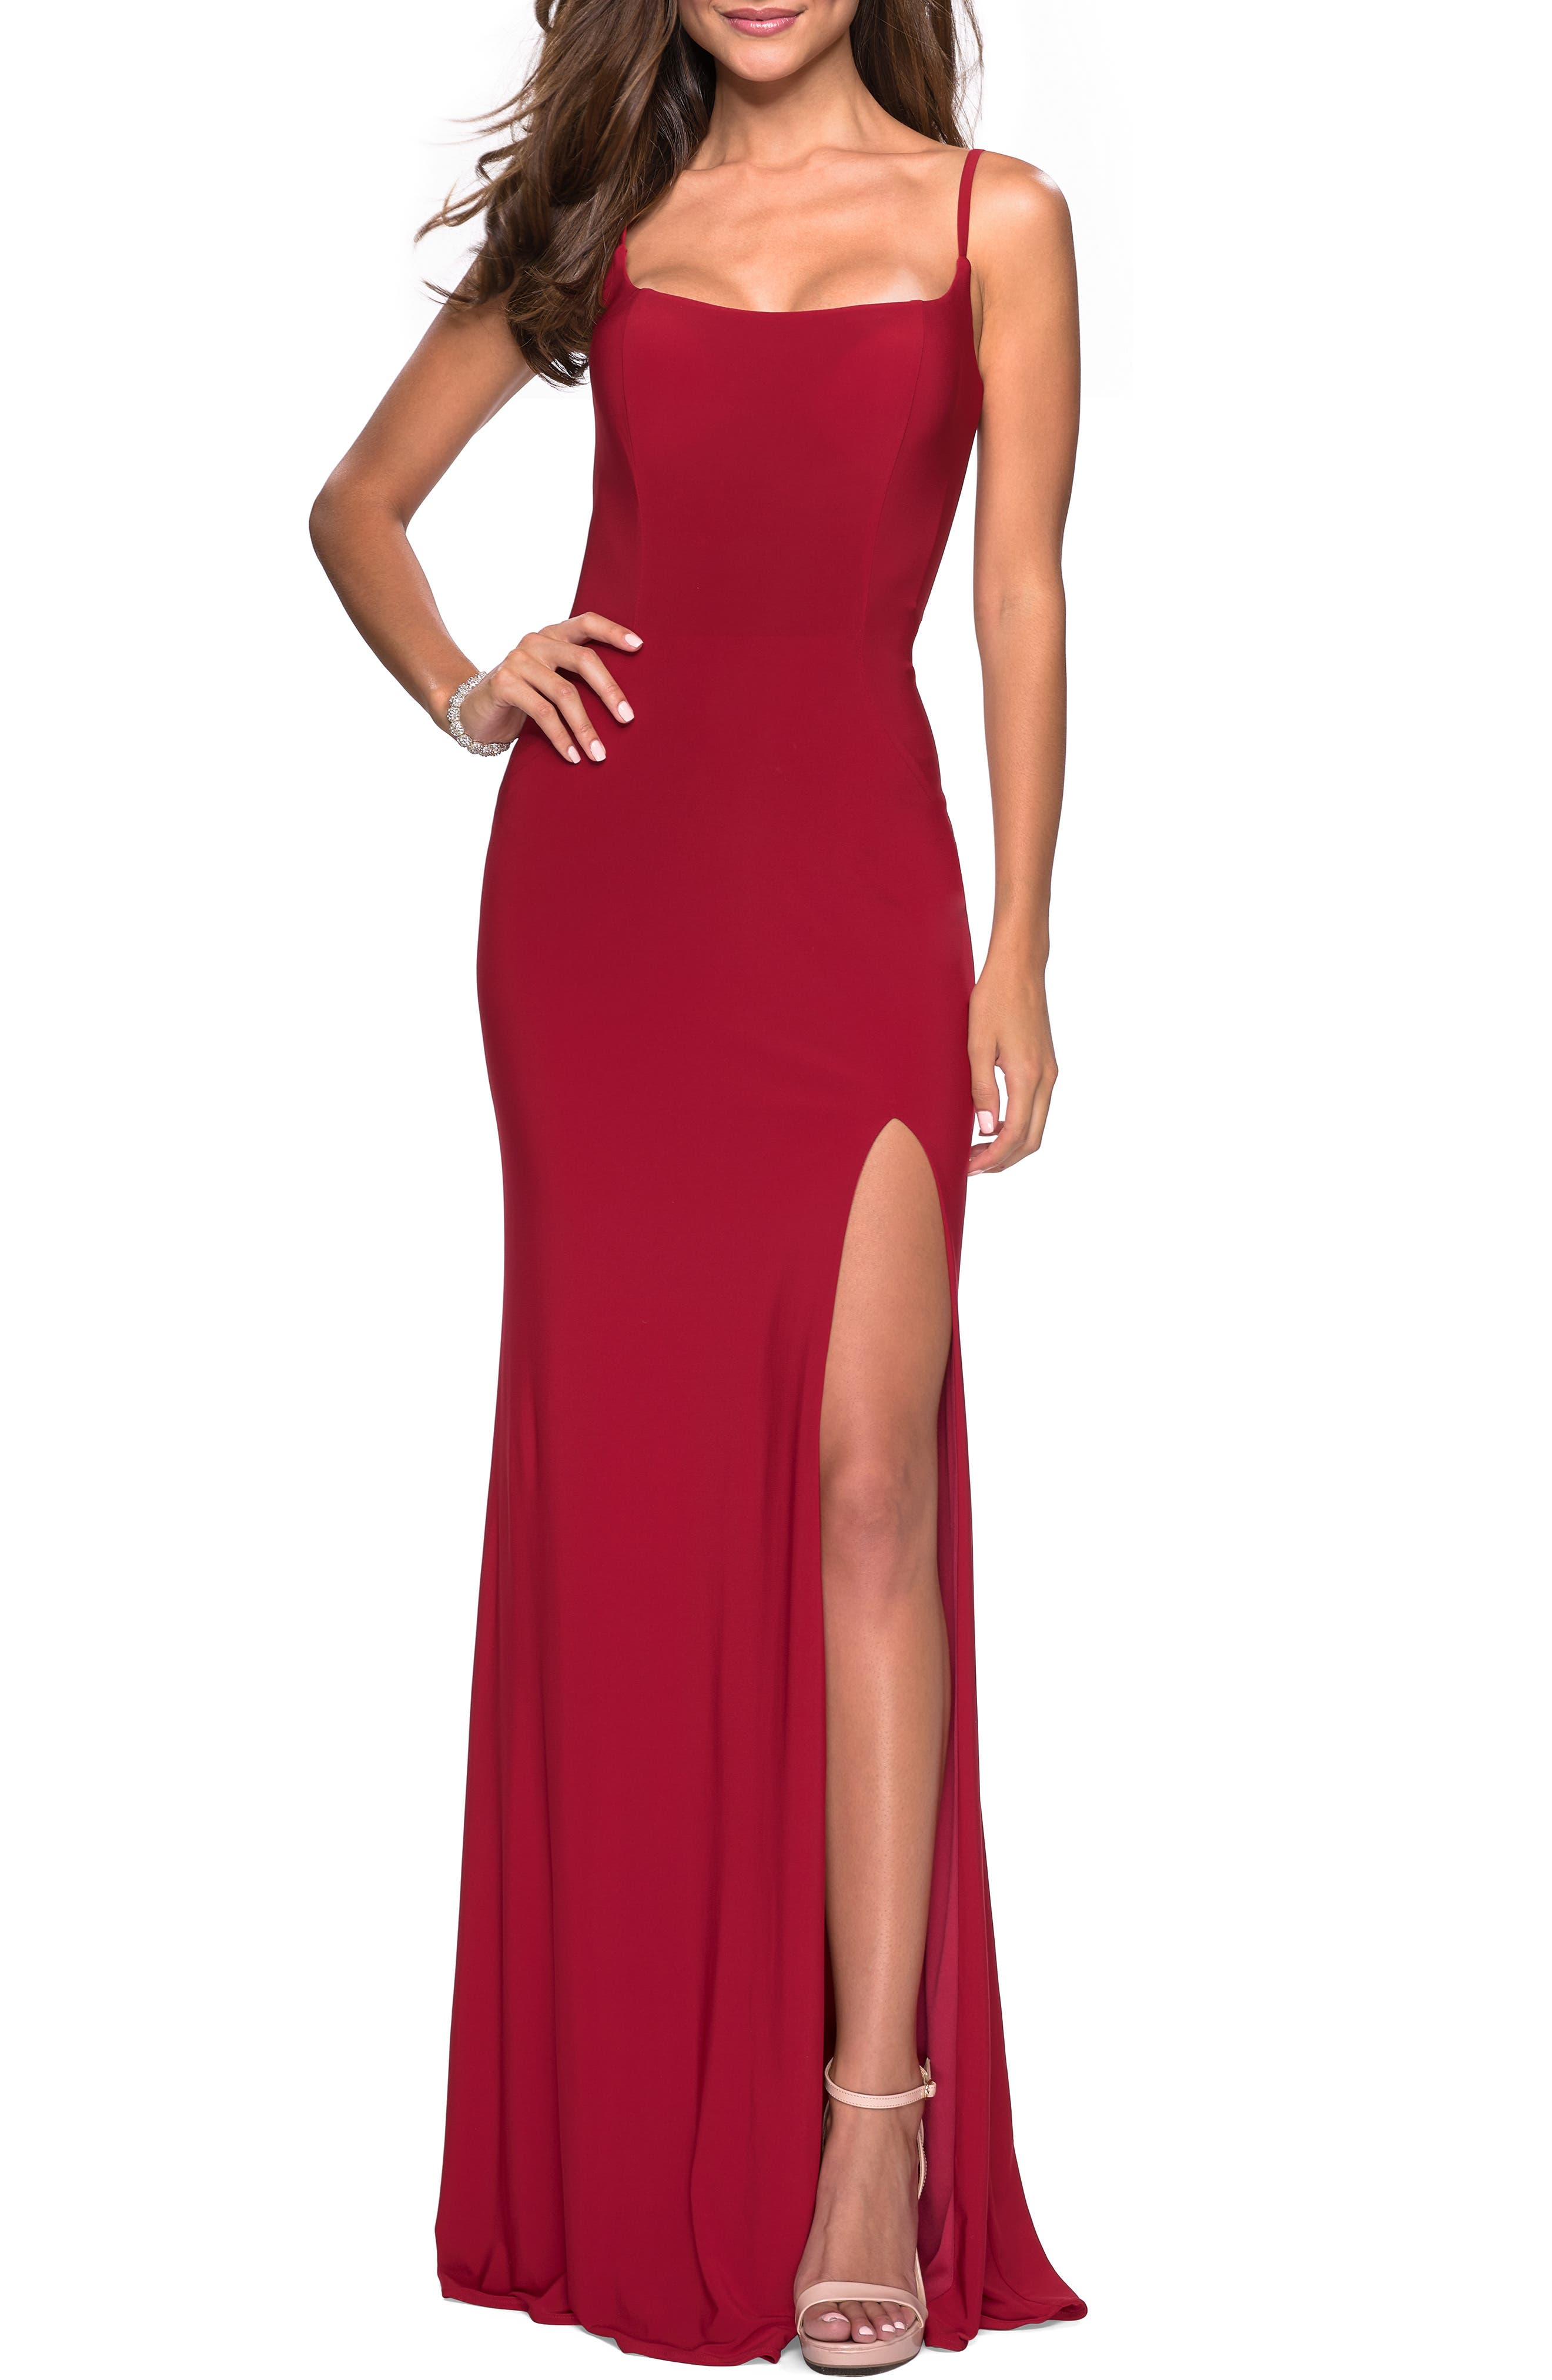 La Femme Strappy Back Jersey Evening Dress, Red